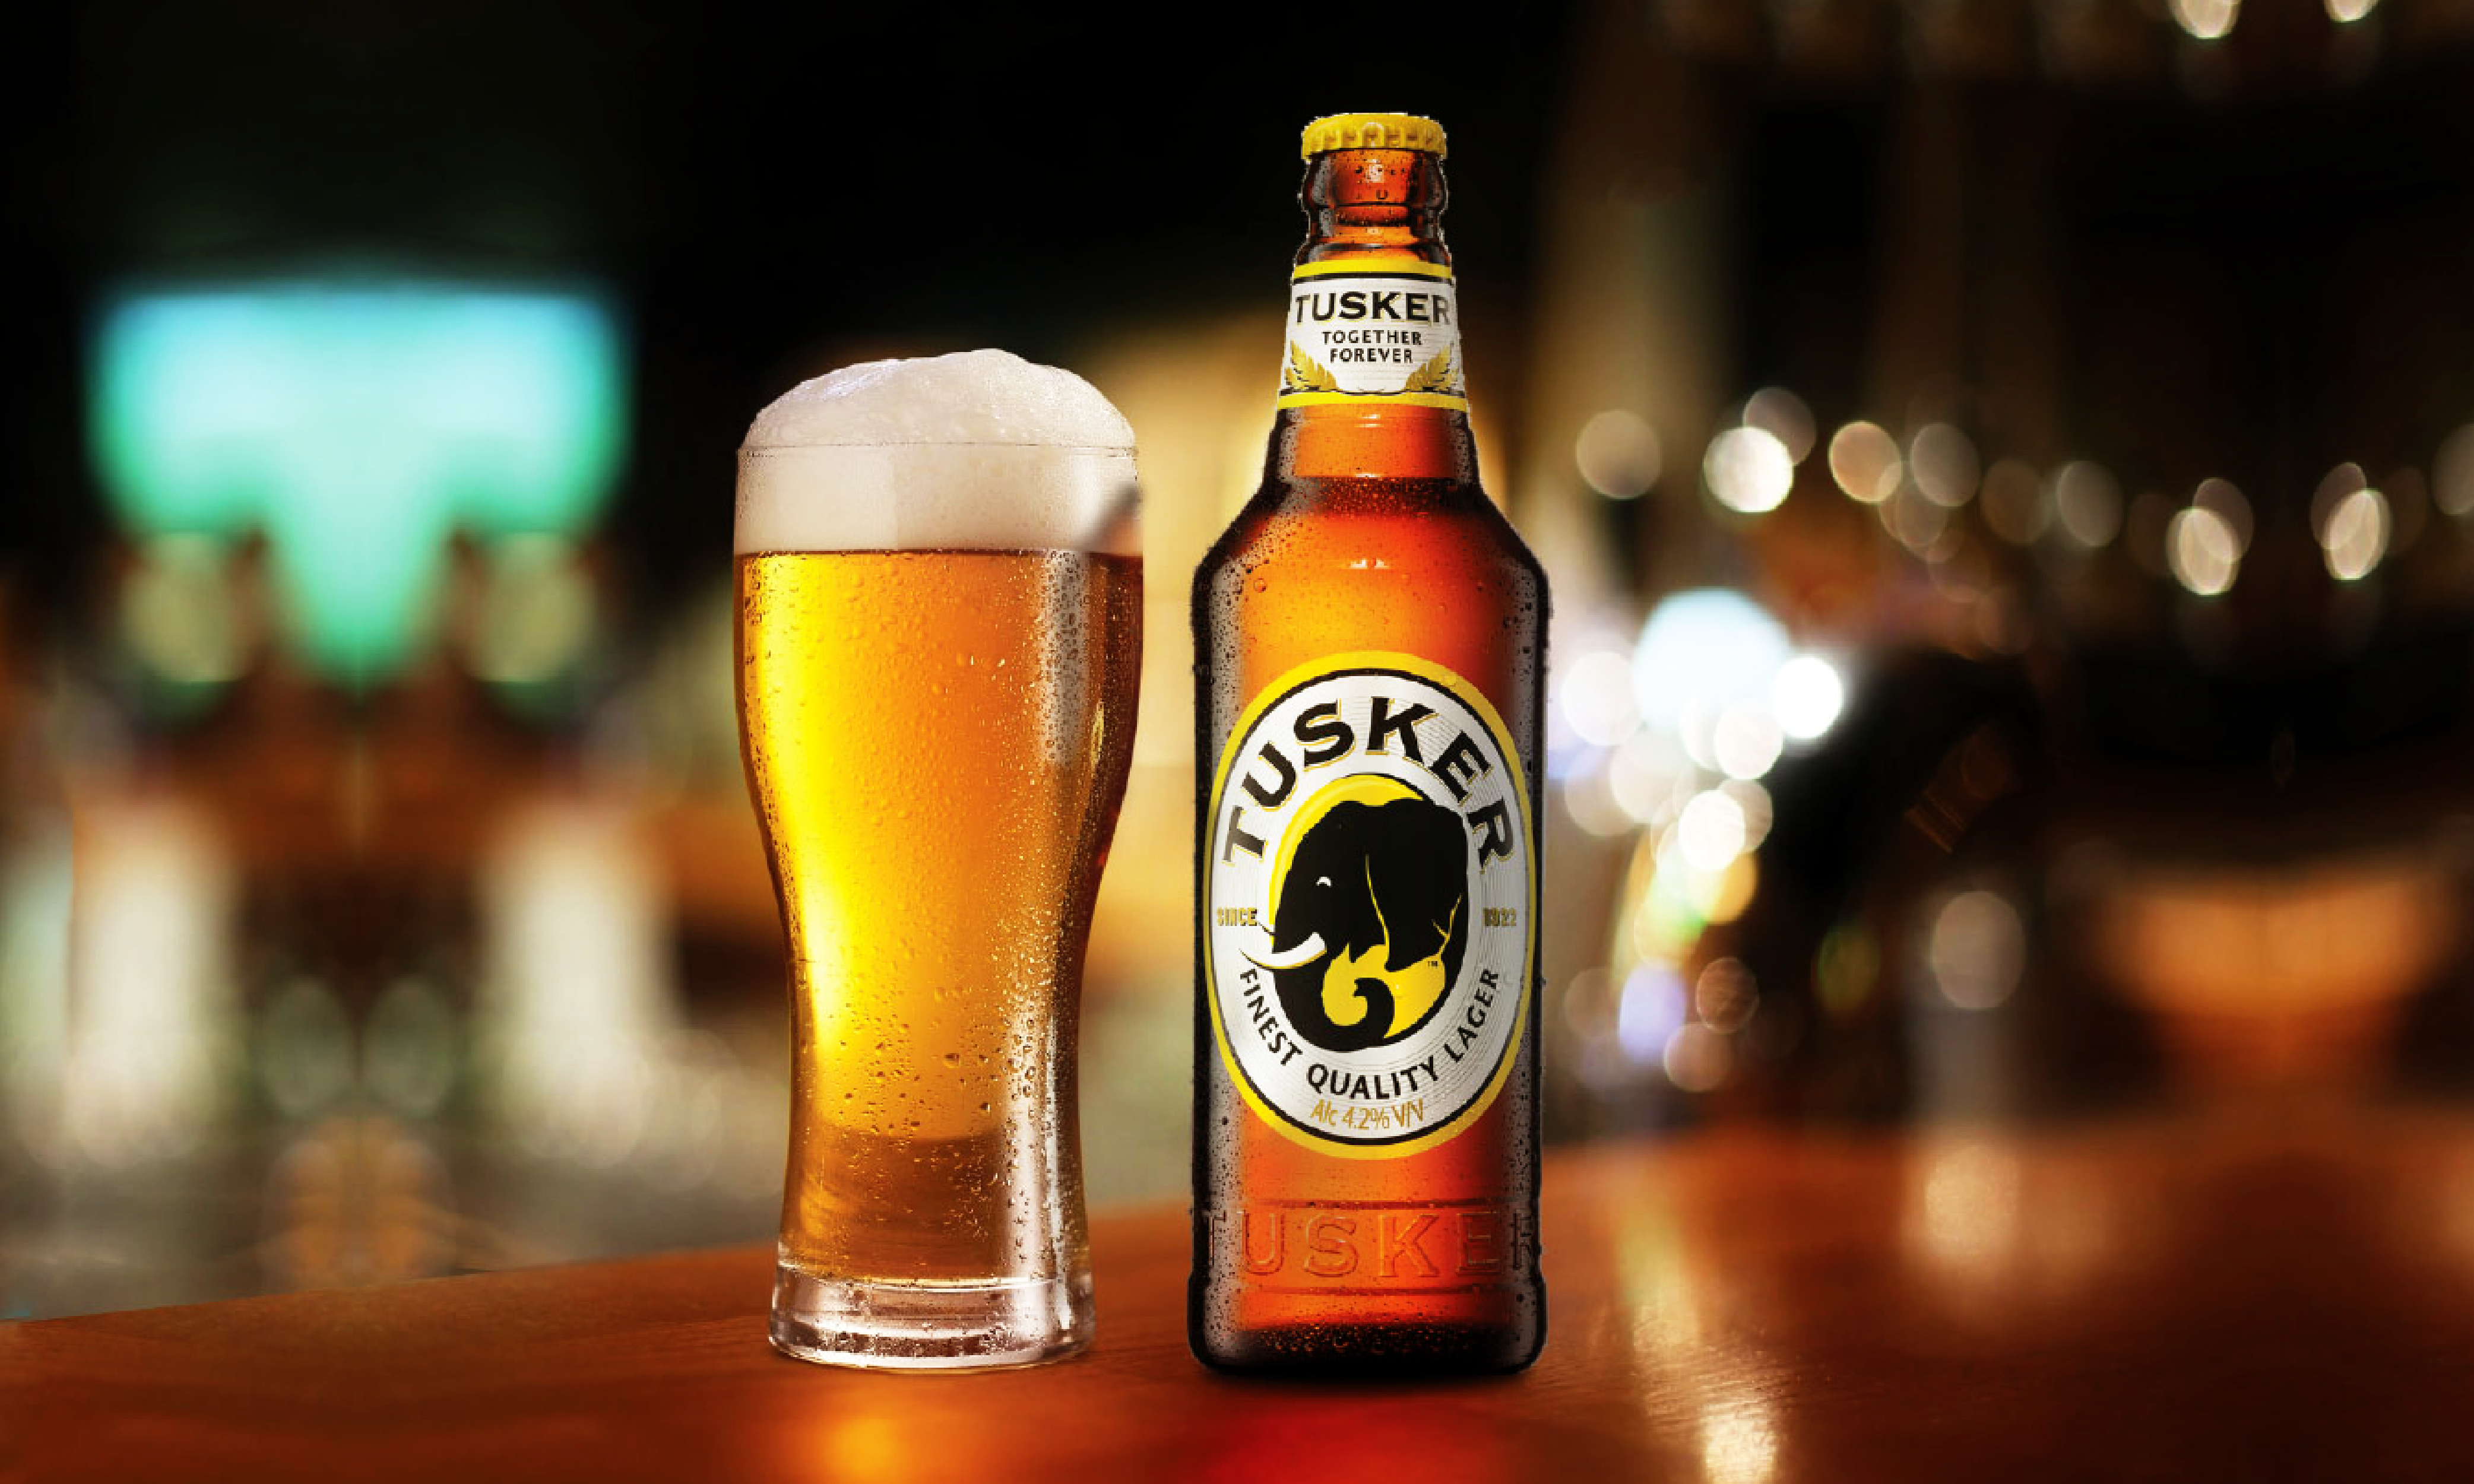 Tusker Lager Makes It To The Top 100 Most Admired African Brands 2020 List photo